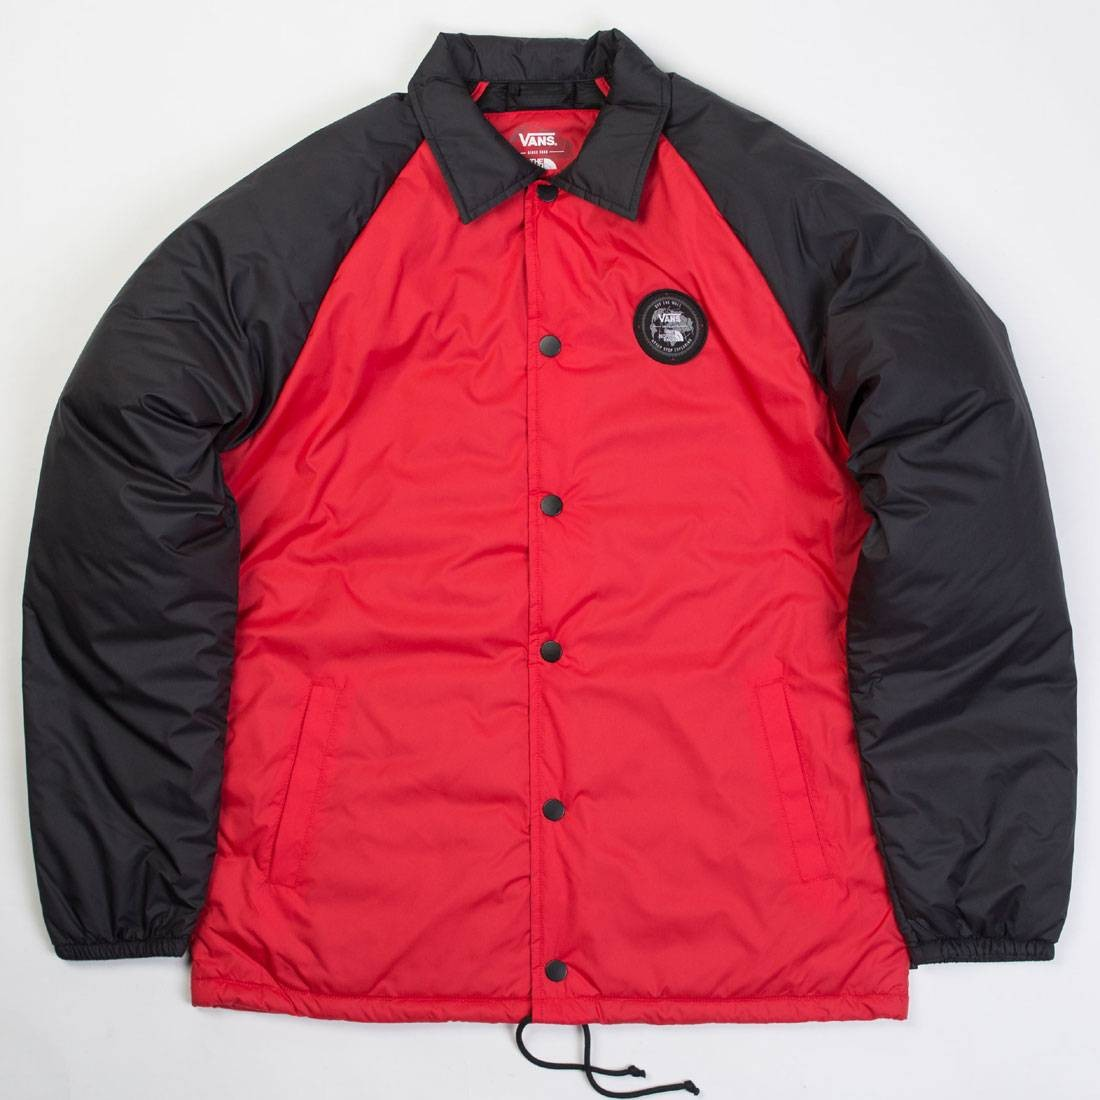 Vans X The North Face Men Torrey Jacket Red Black